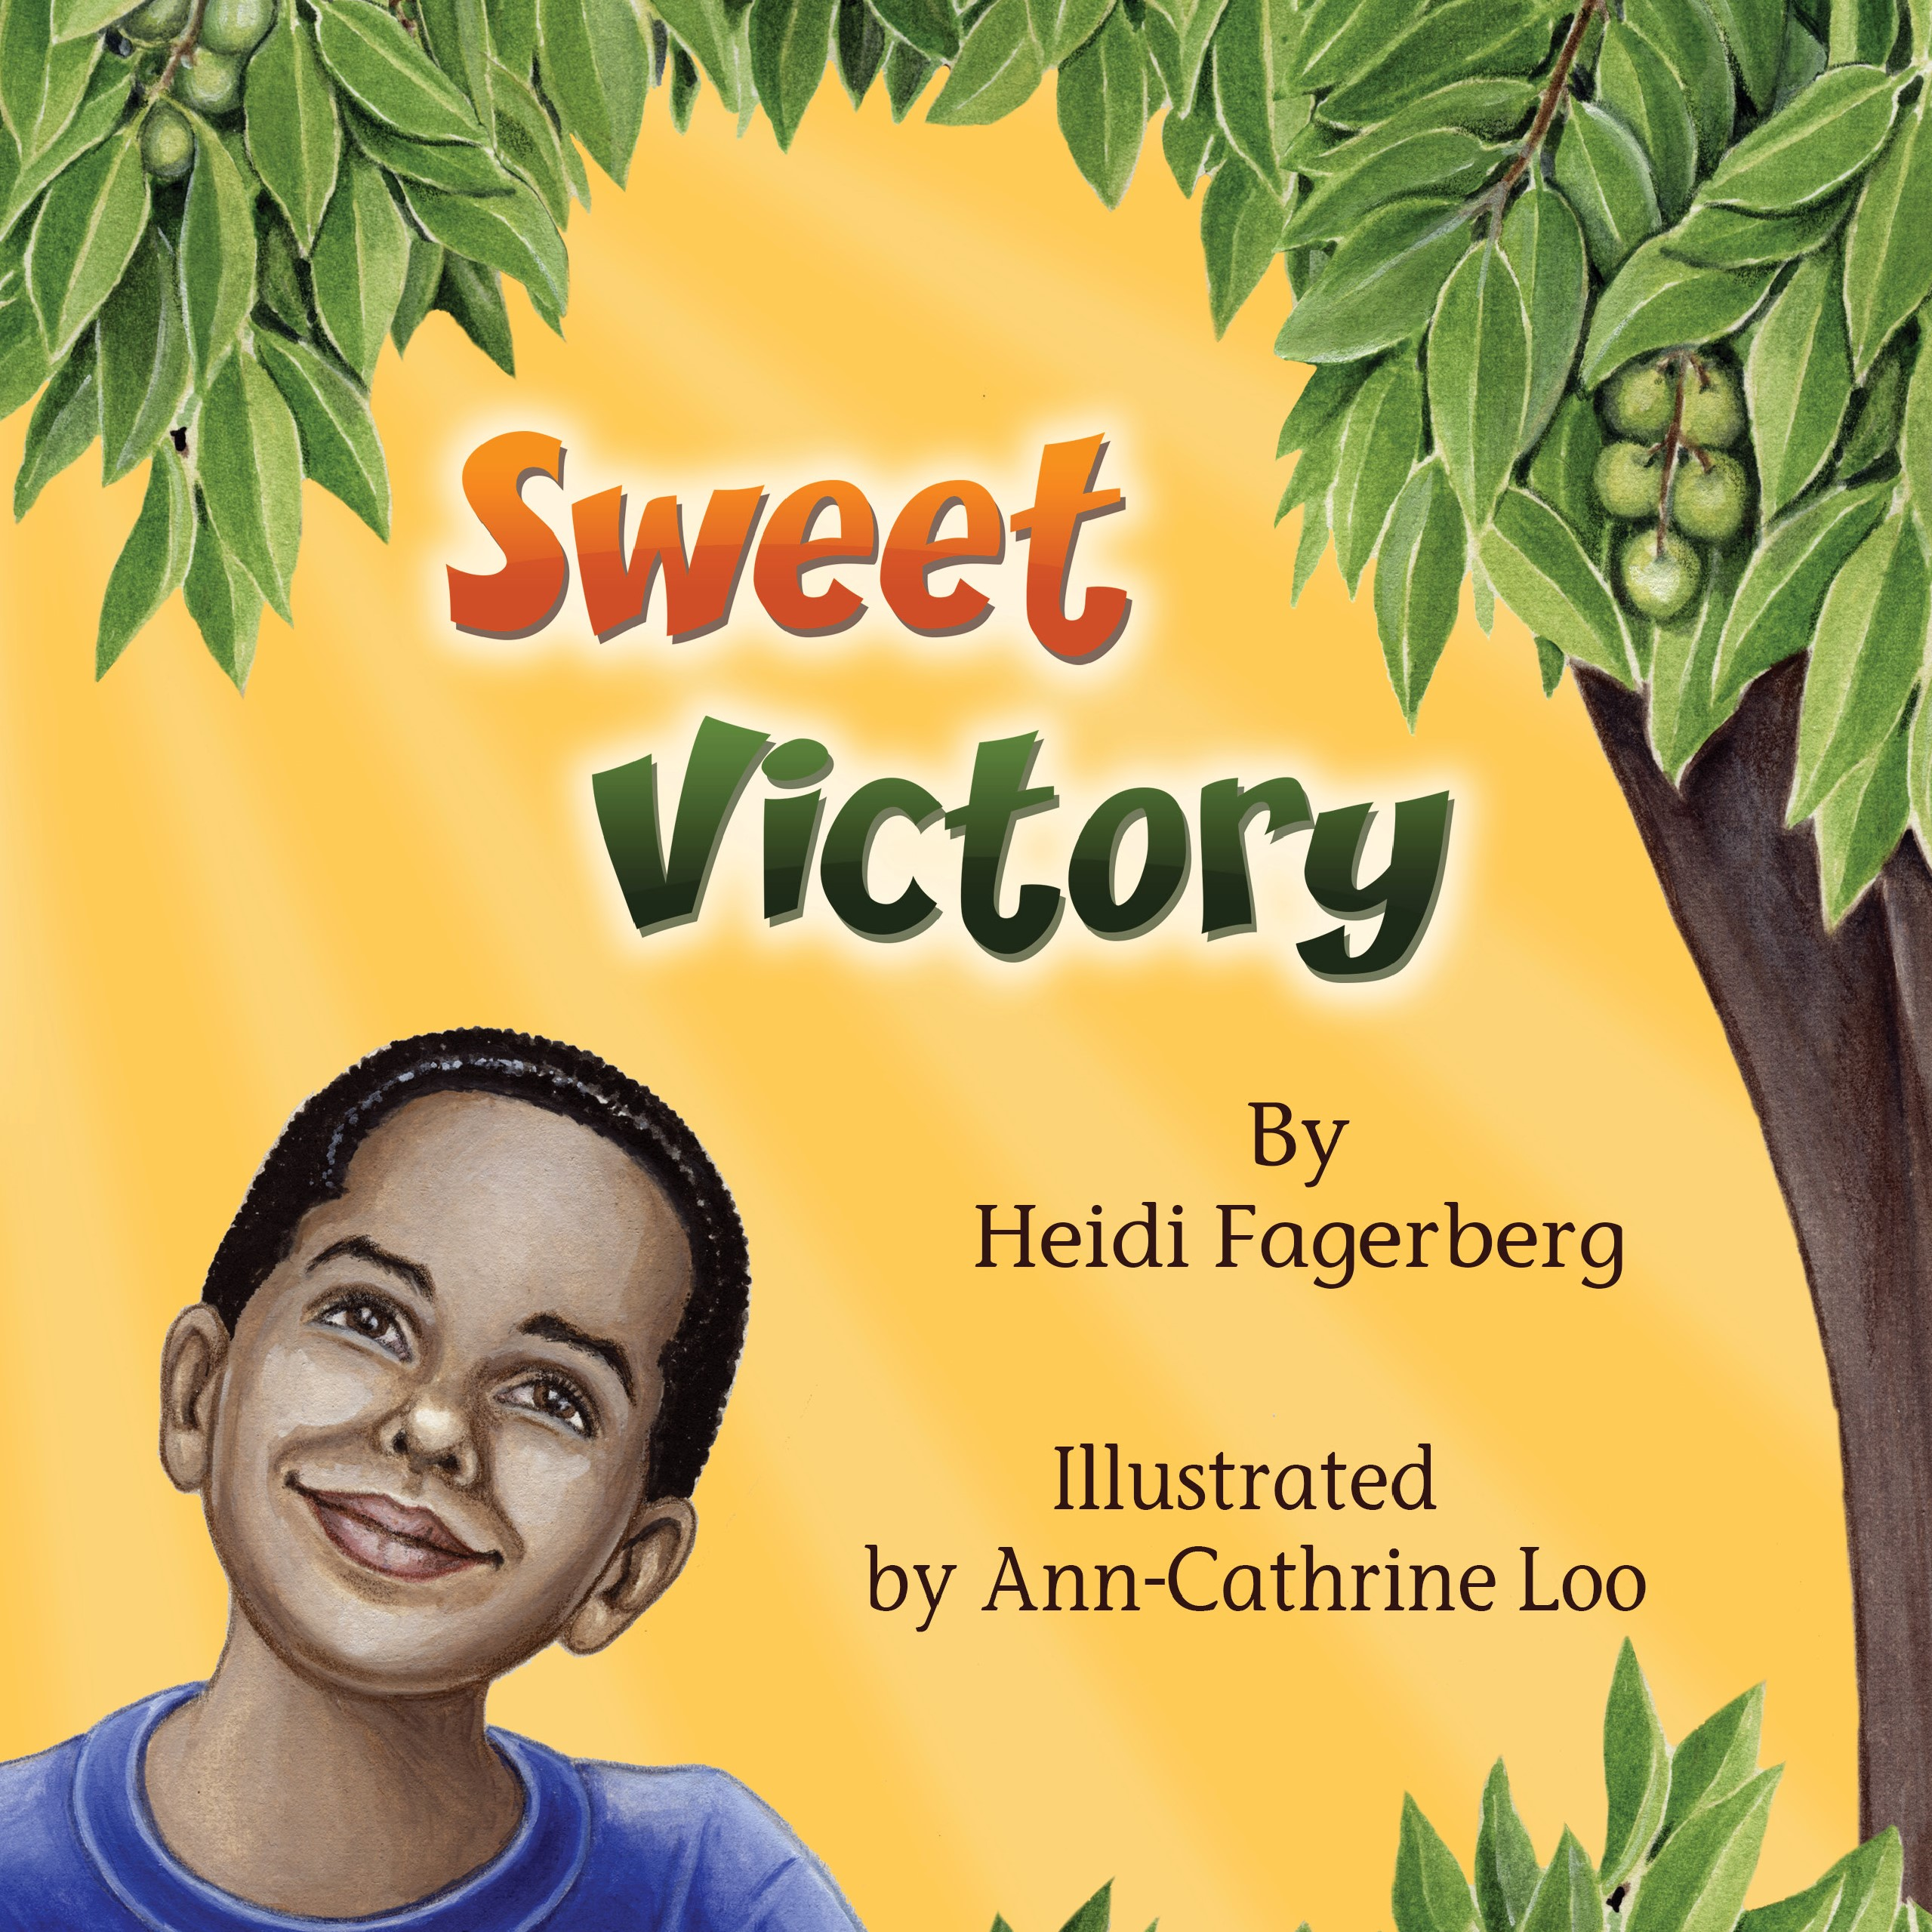 Cover Page for Sweet Victory Children's Book